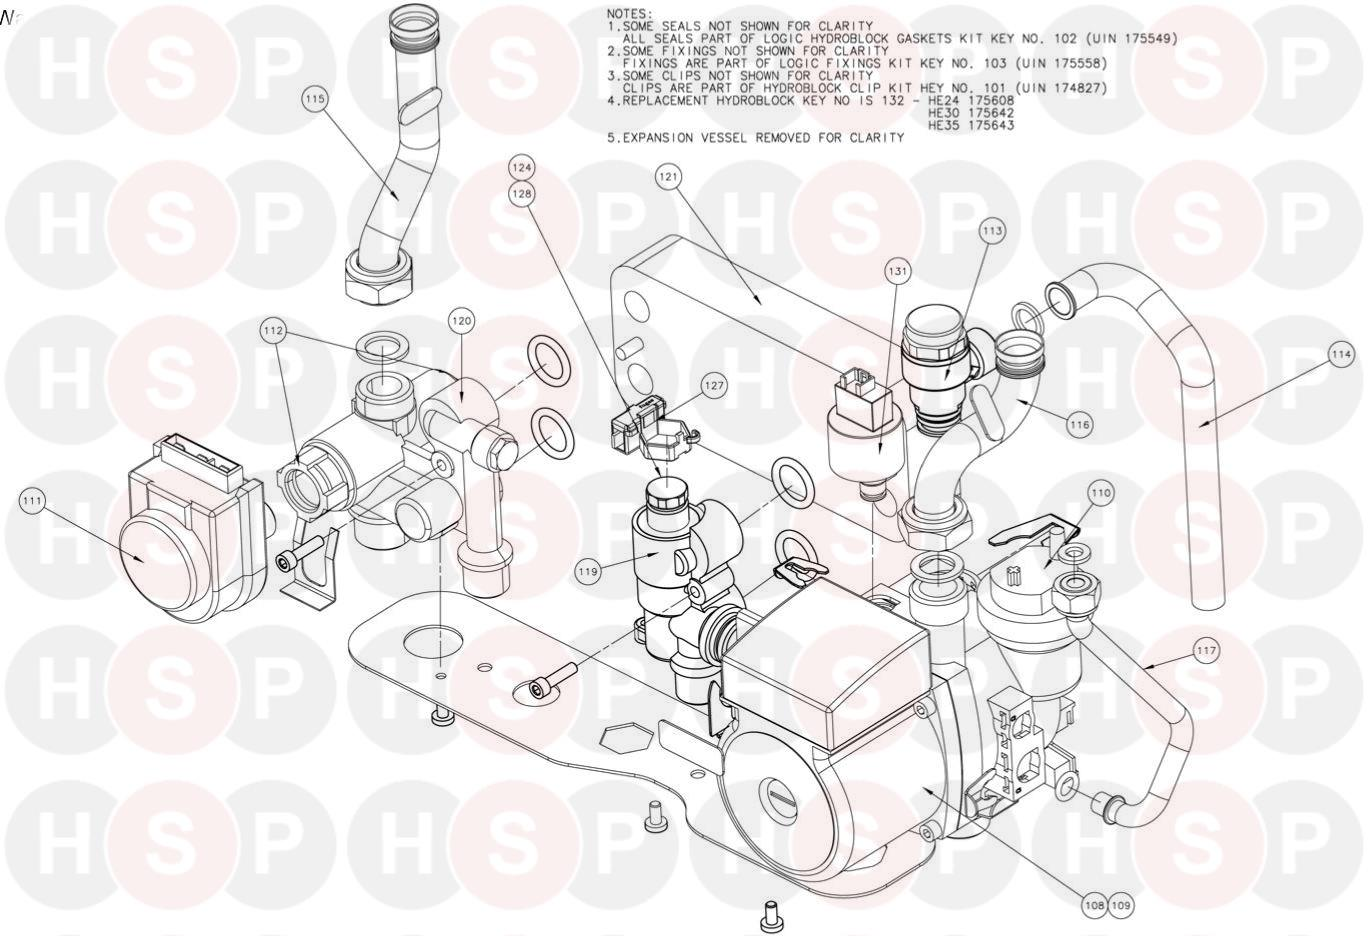 ideal logic + combi 30 (water management) diagram | heating spare parts penn international 30 diagram ideal logic combi 30 diagram